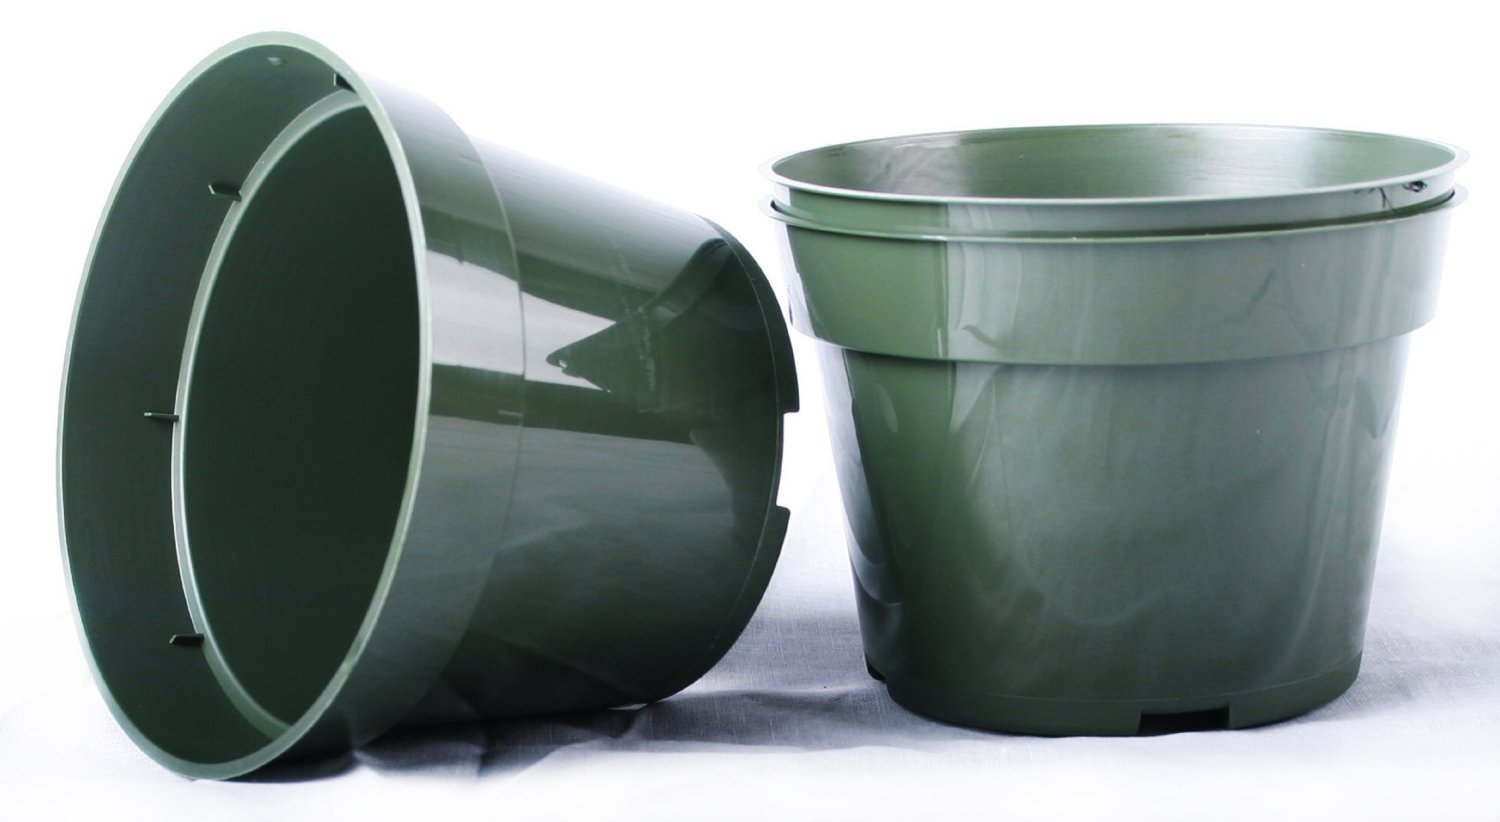 Azalea 40 NEW 10 Inch Plastic Nursery Pots ~ Pots ARE 10 Inch Round At the Top and 7.3 Inch Deep. Color Green